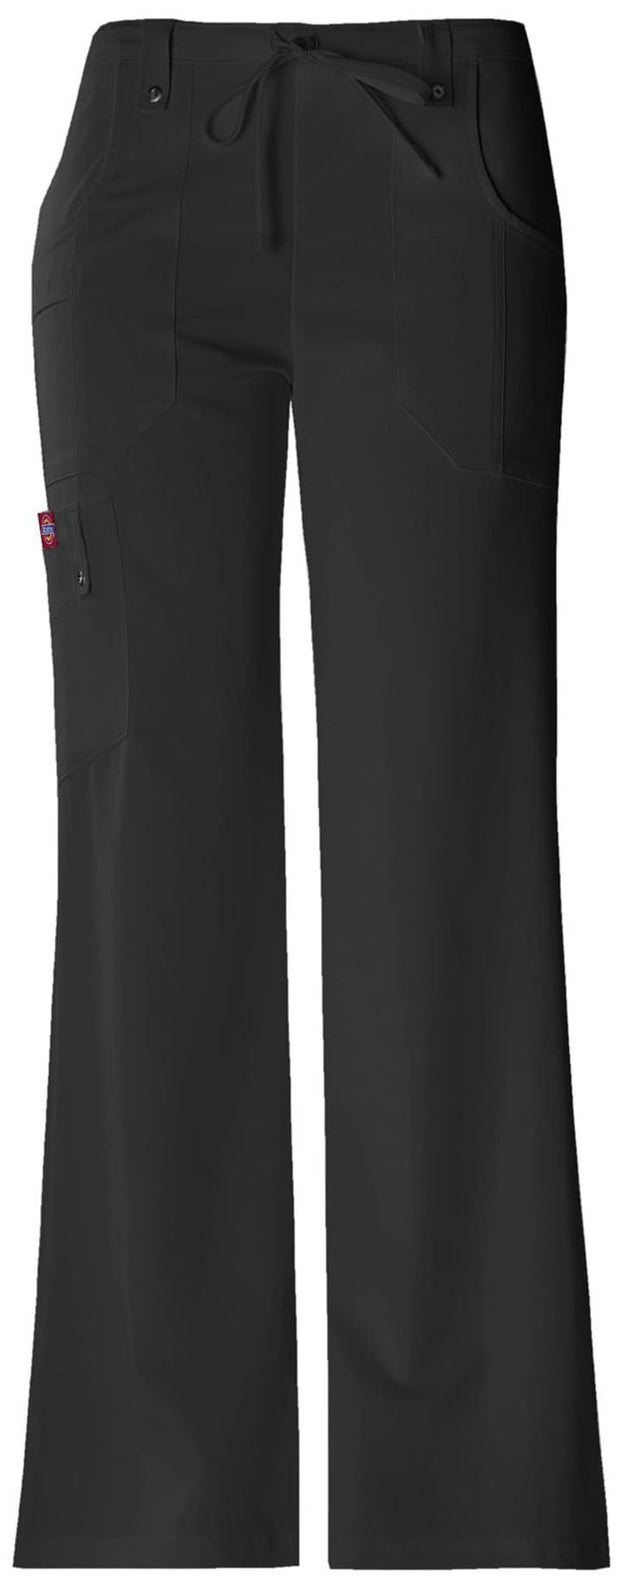 82011T<br> Mid Rise Drawstring Cargo Pant (Tall)